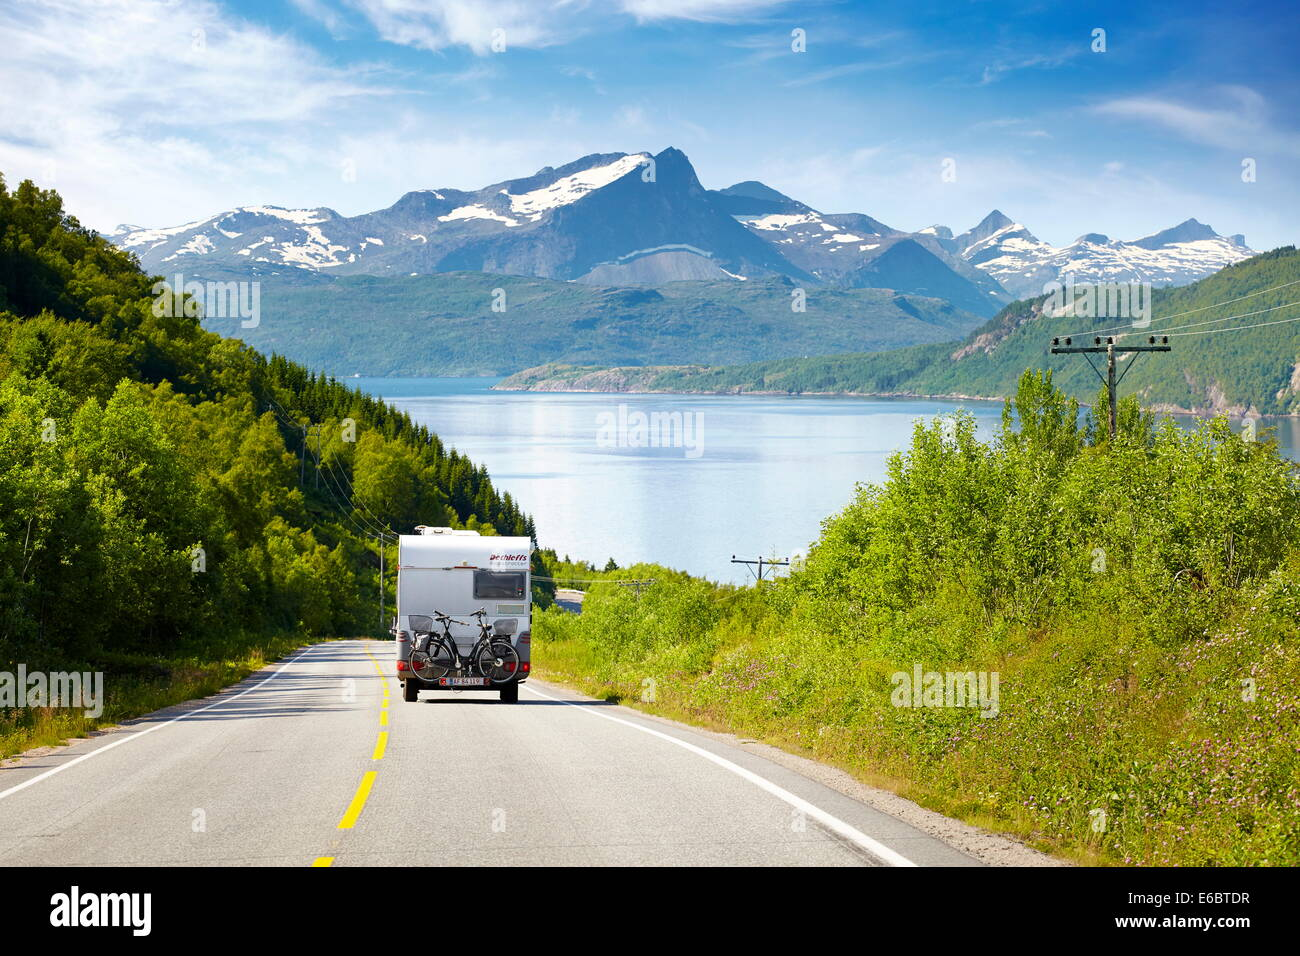 Norvegian landscape with white motorhome on the E6 road highway, Norway - Stock Image